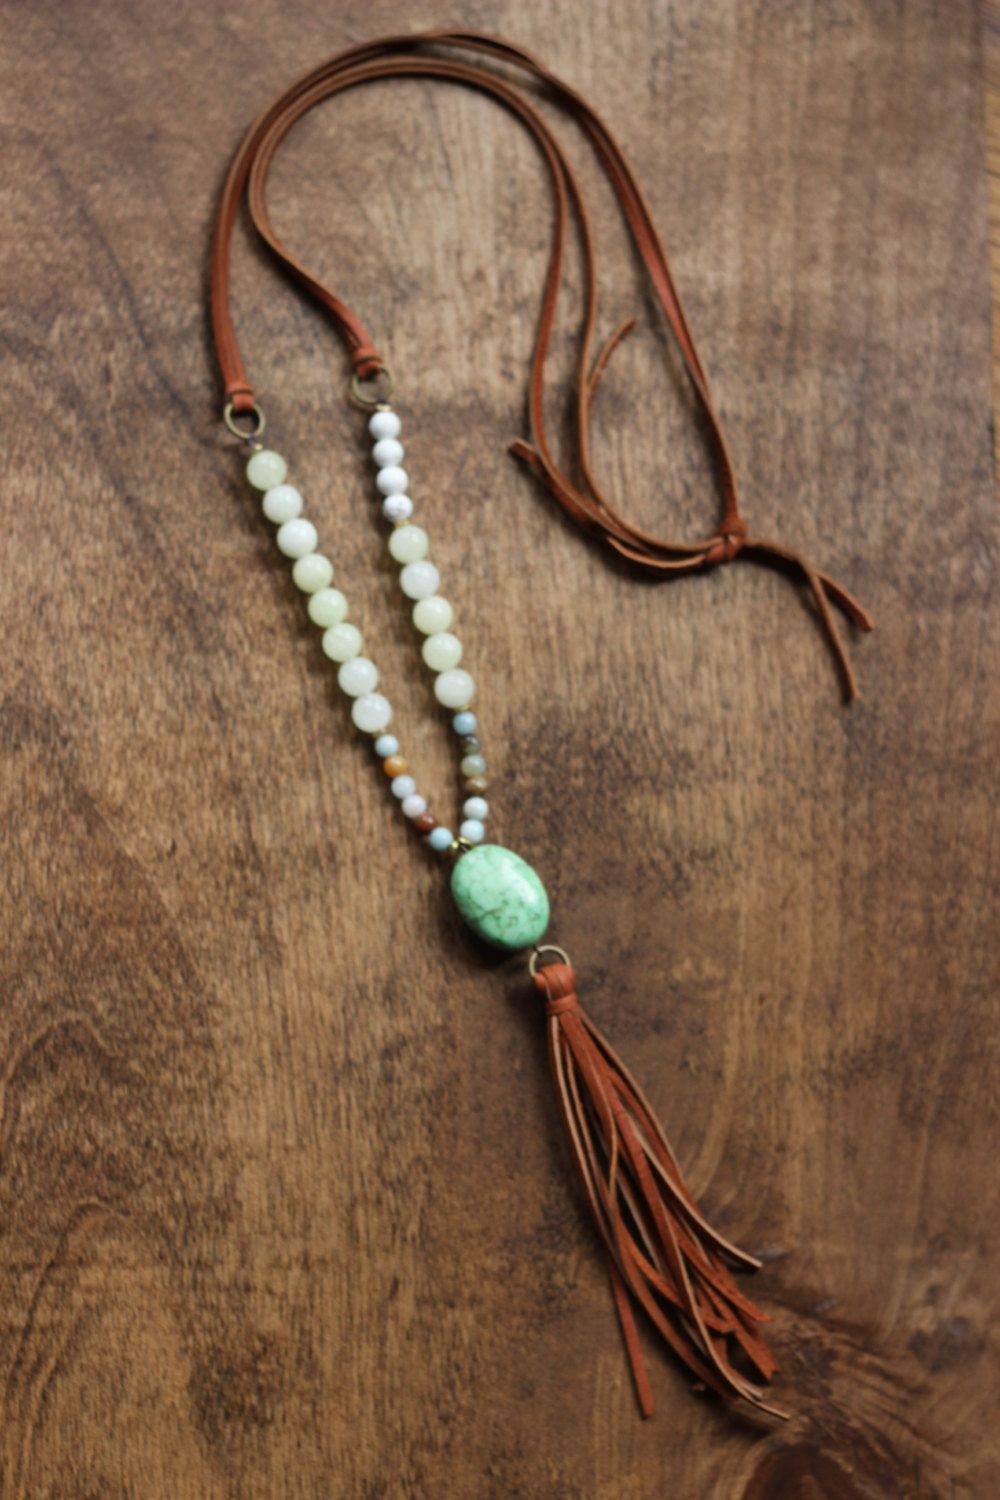 Boho beaded necklace with camel tassel and green stone pendant